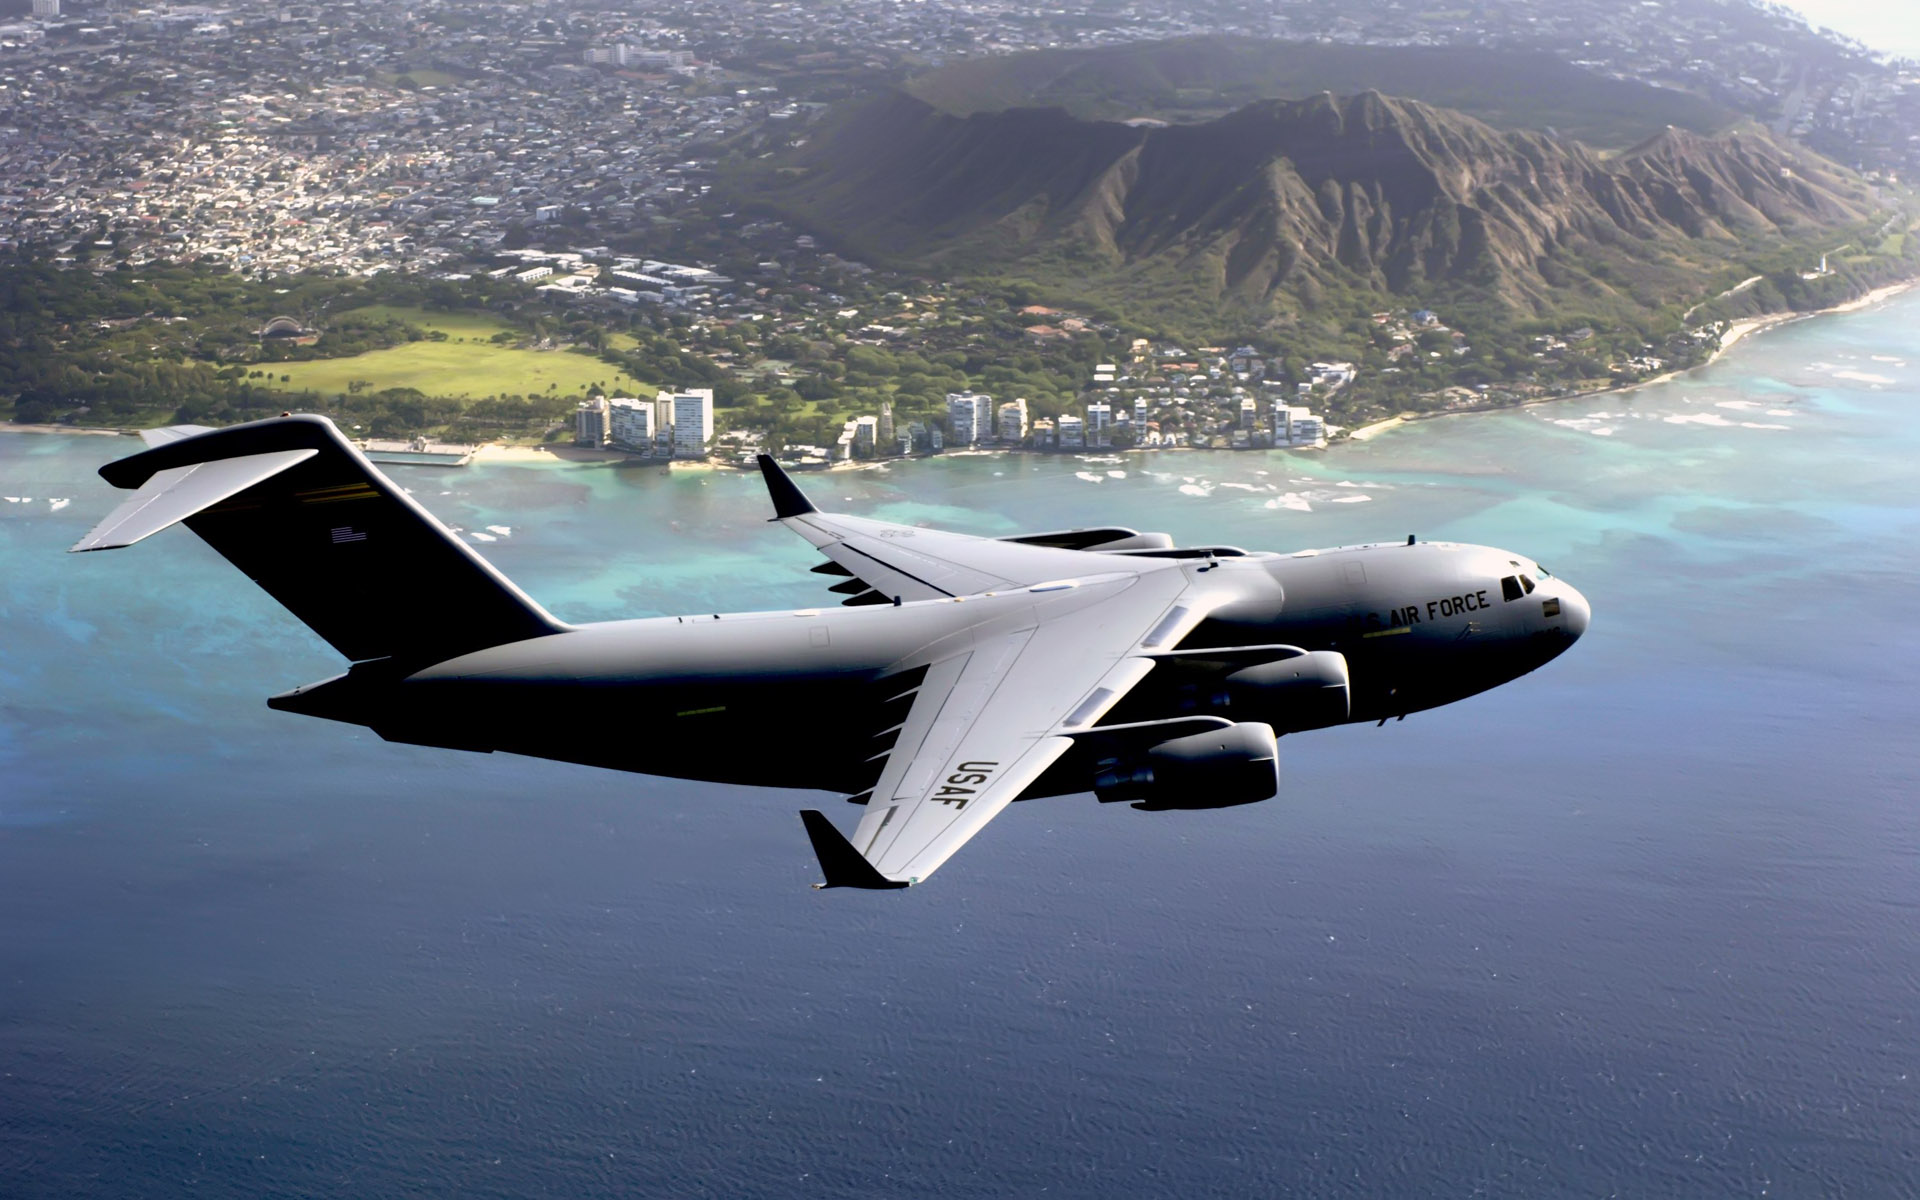 Hawaii Based C 17 Globemaster III 260.2 Kb